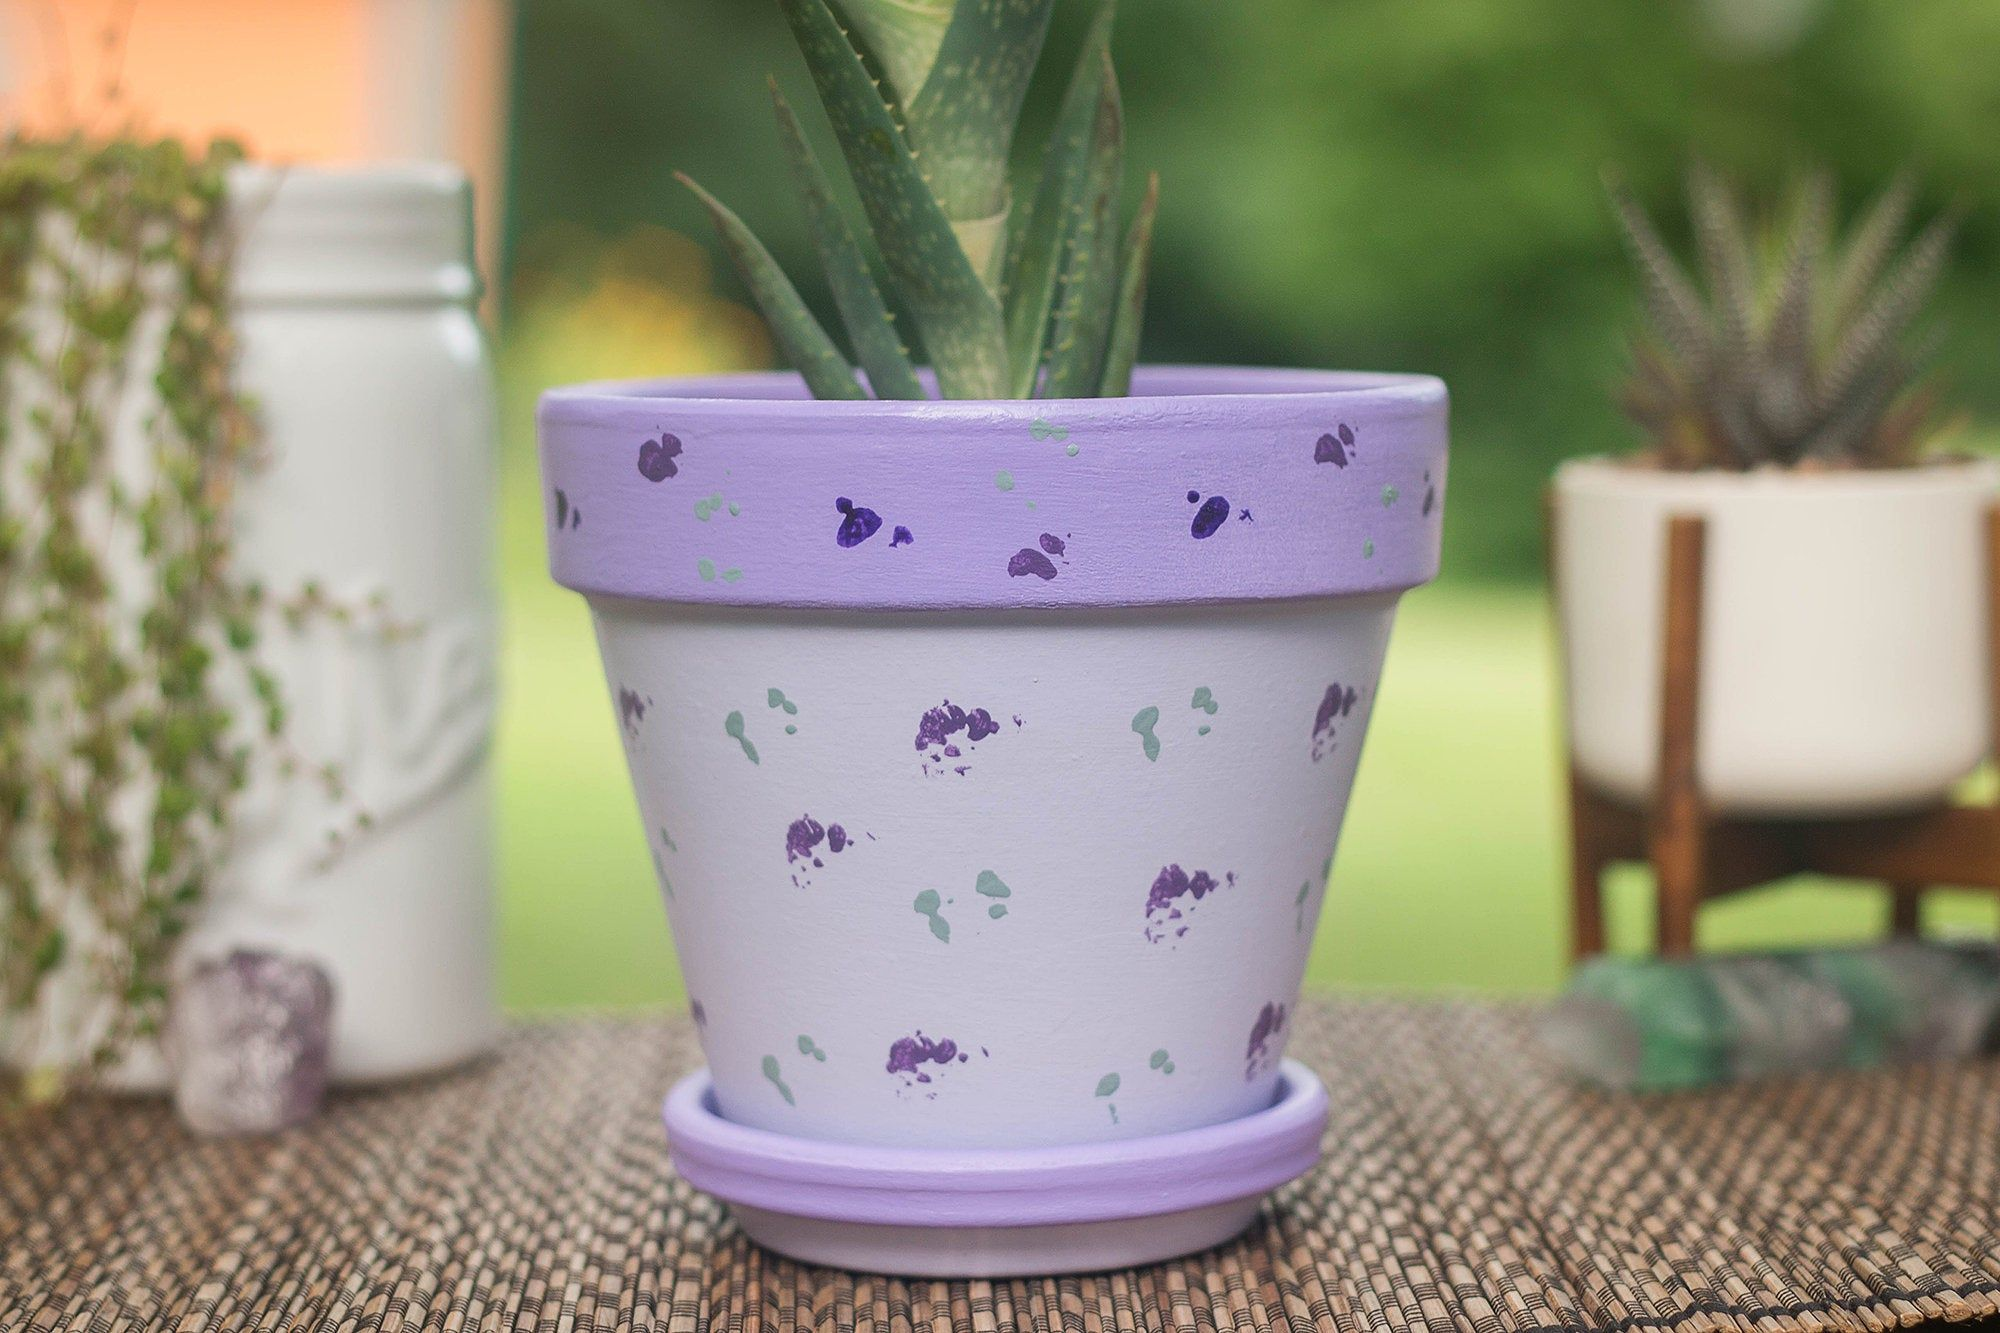 Fernleaf Hand Painted 6 Inch Lavender Abstract Acrylic Pot Decorative Pot Terracotta Pot Home Deco Decorative Pots Decorative Containers Abstract Acrylic